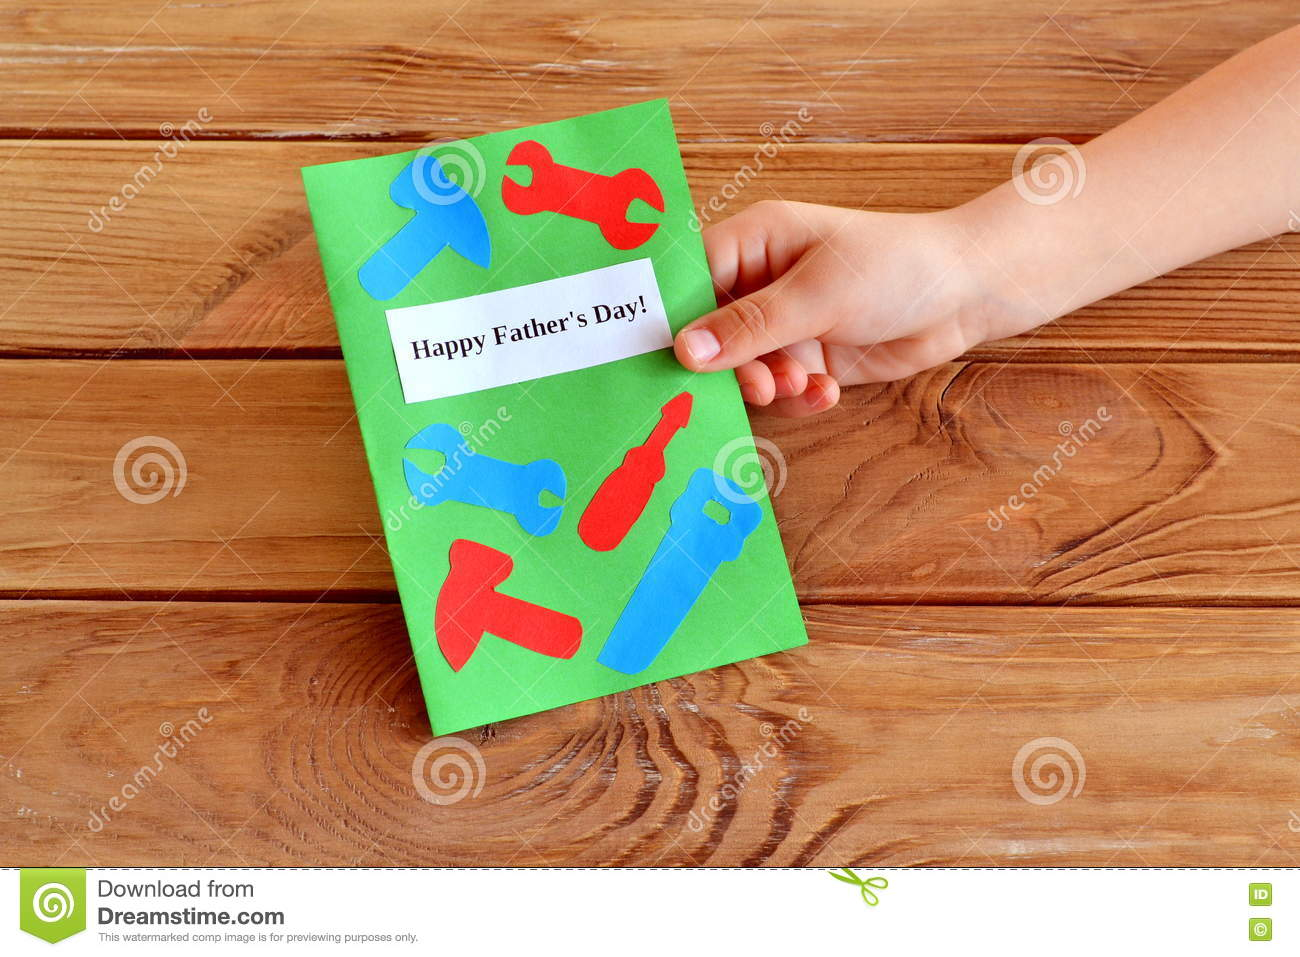 Child holds a card in hand greeting card fathers day happy greeting card with paper tools happy fathers day fathers day gift fathers day greeting card m4hsunfo